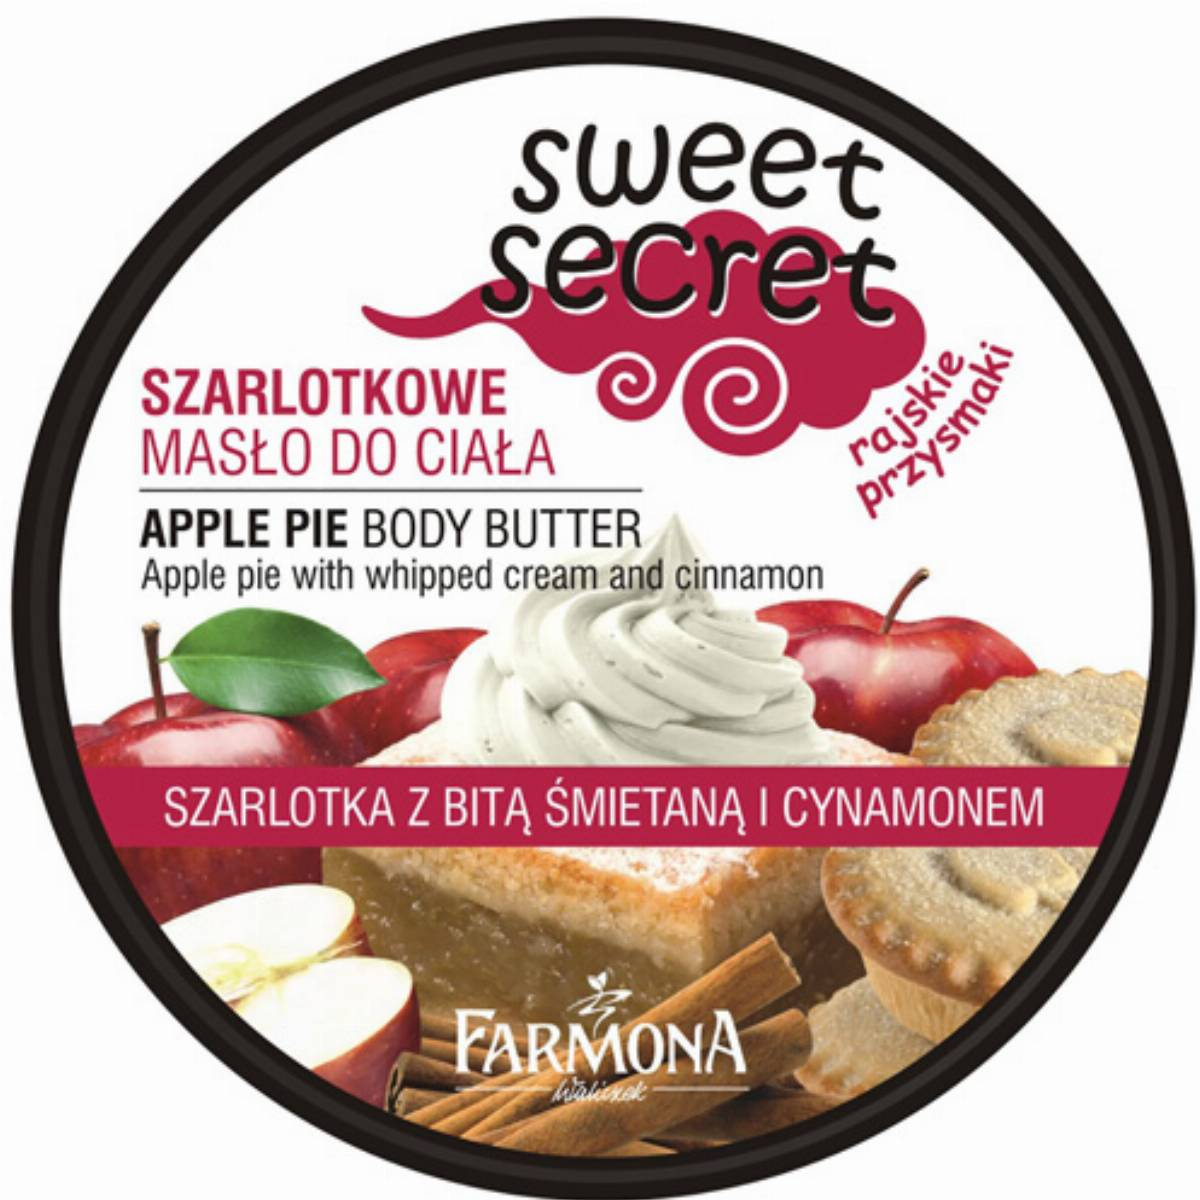 Farmona Sweet Secret szarlotkowe maslo do ciala